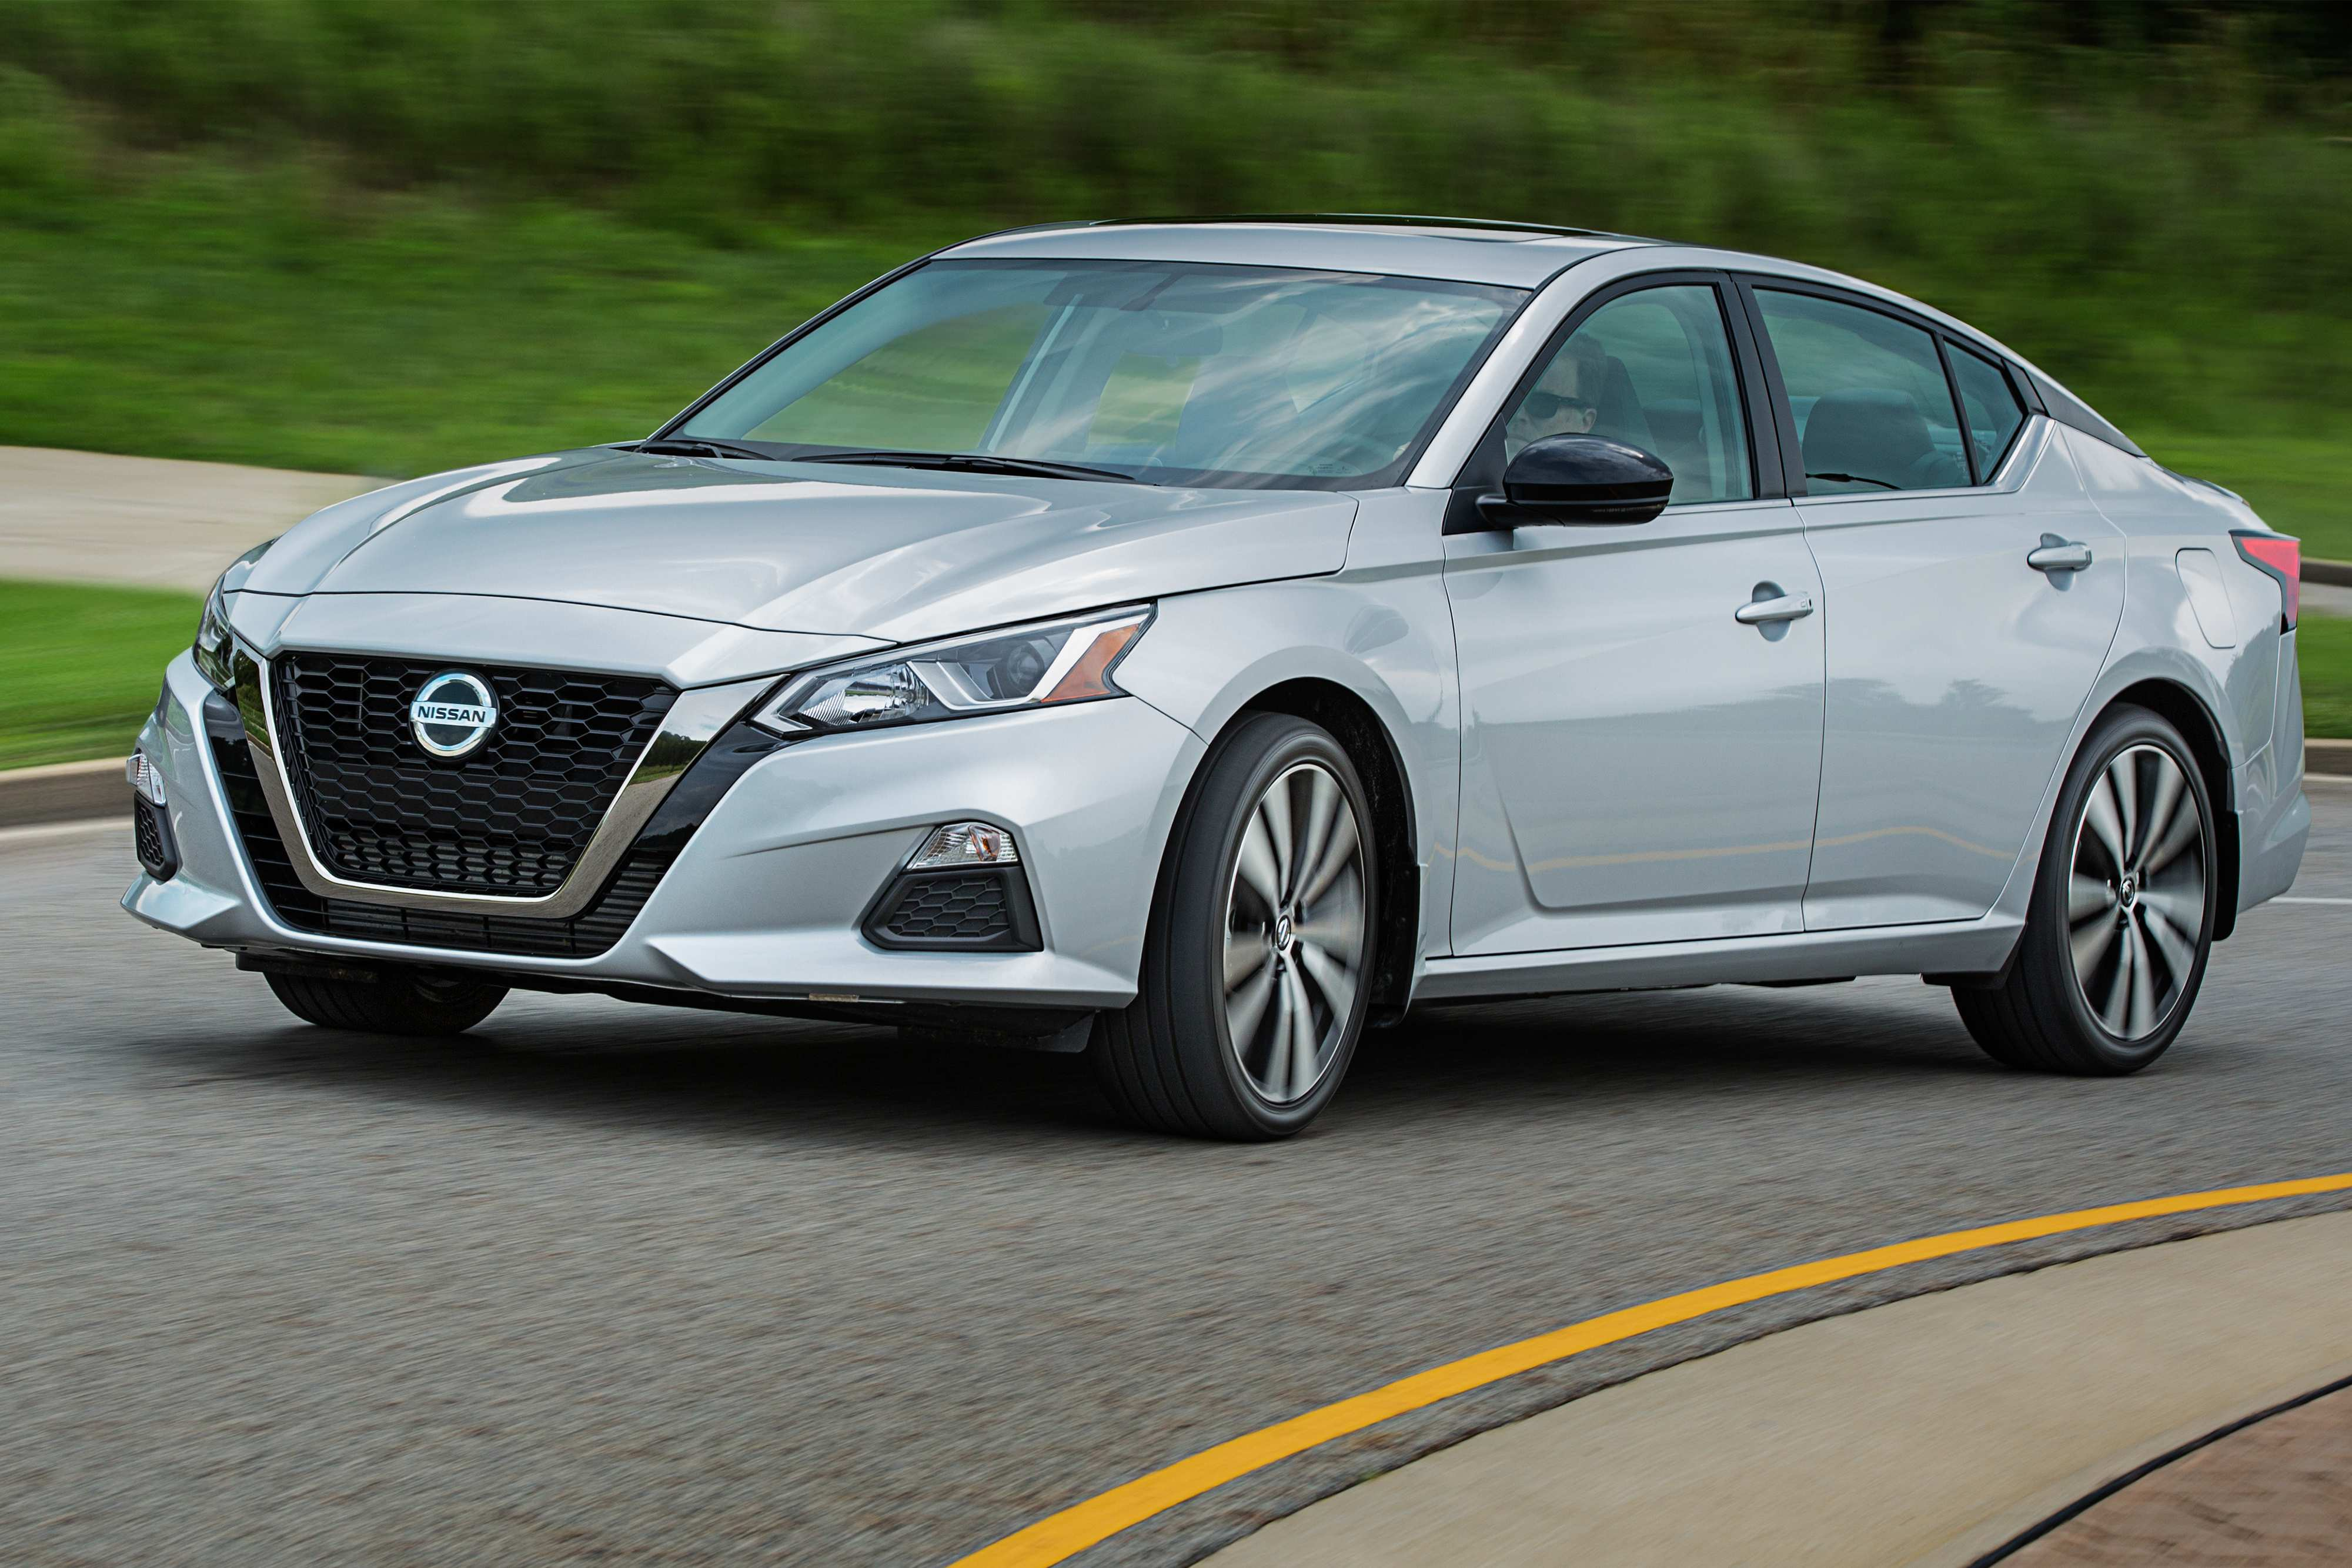 39 A When Does The 2020 Nissan Altima Come Out Concept And Review